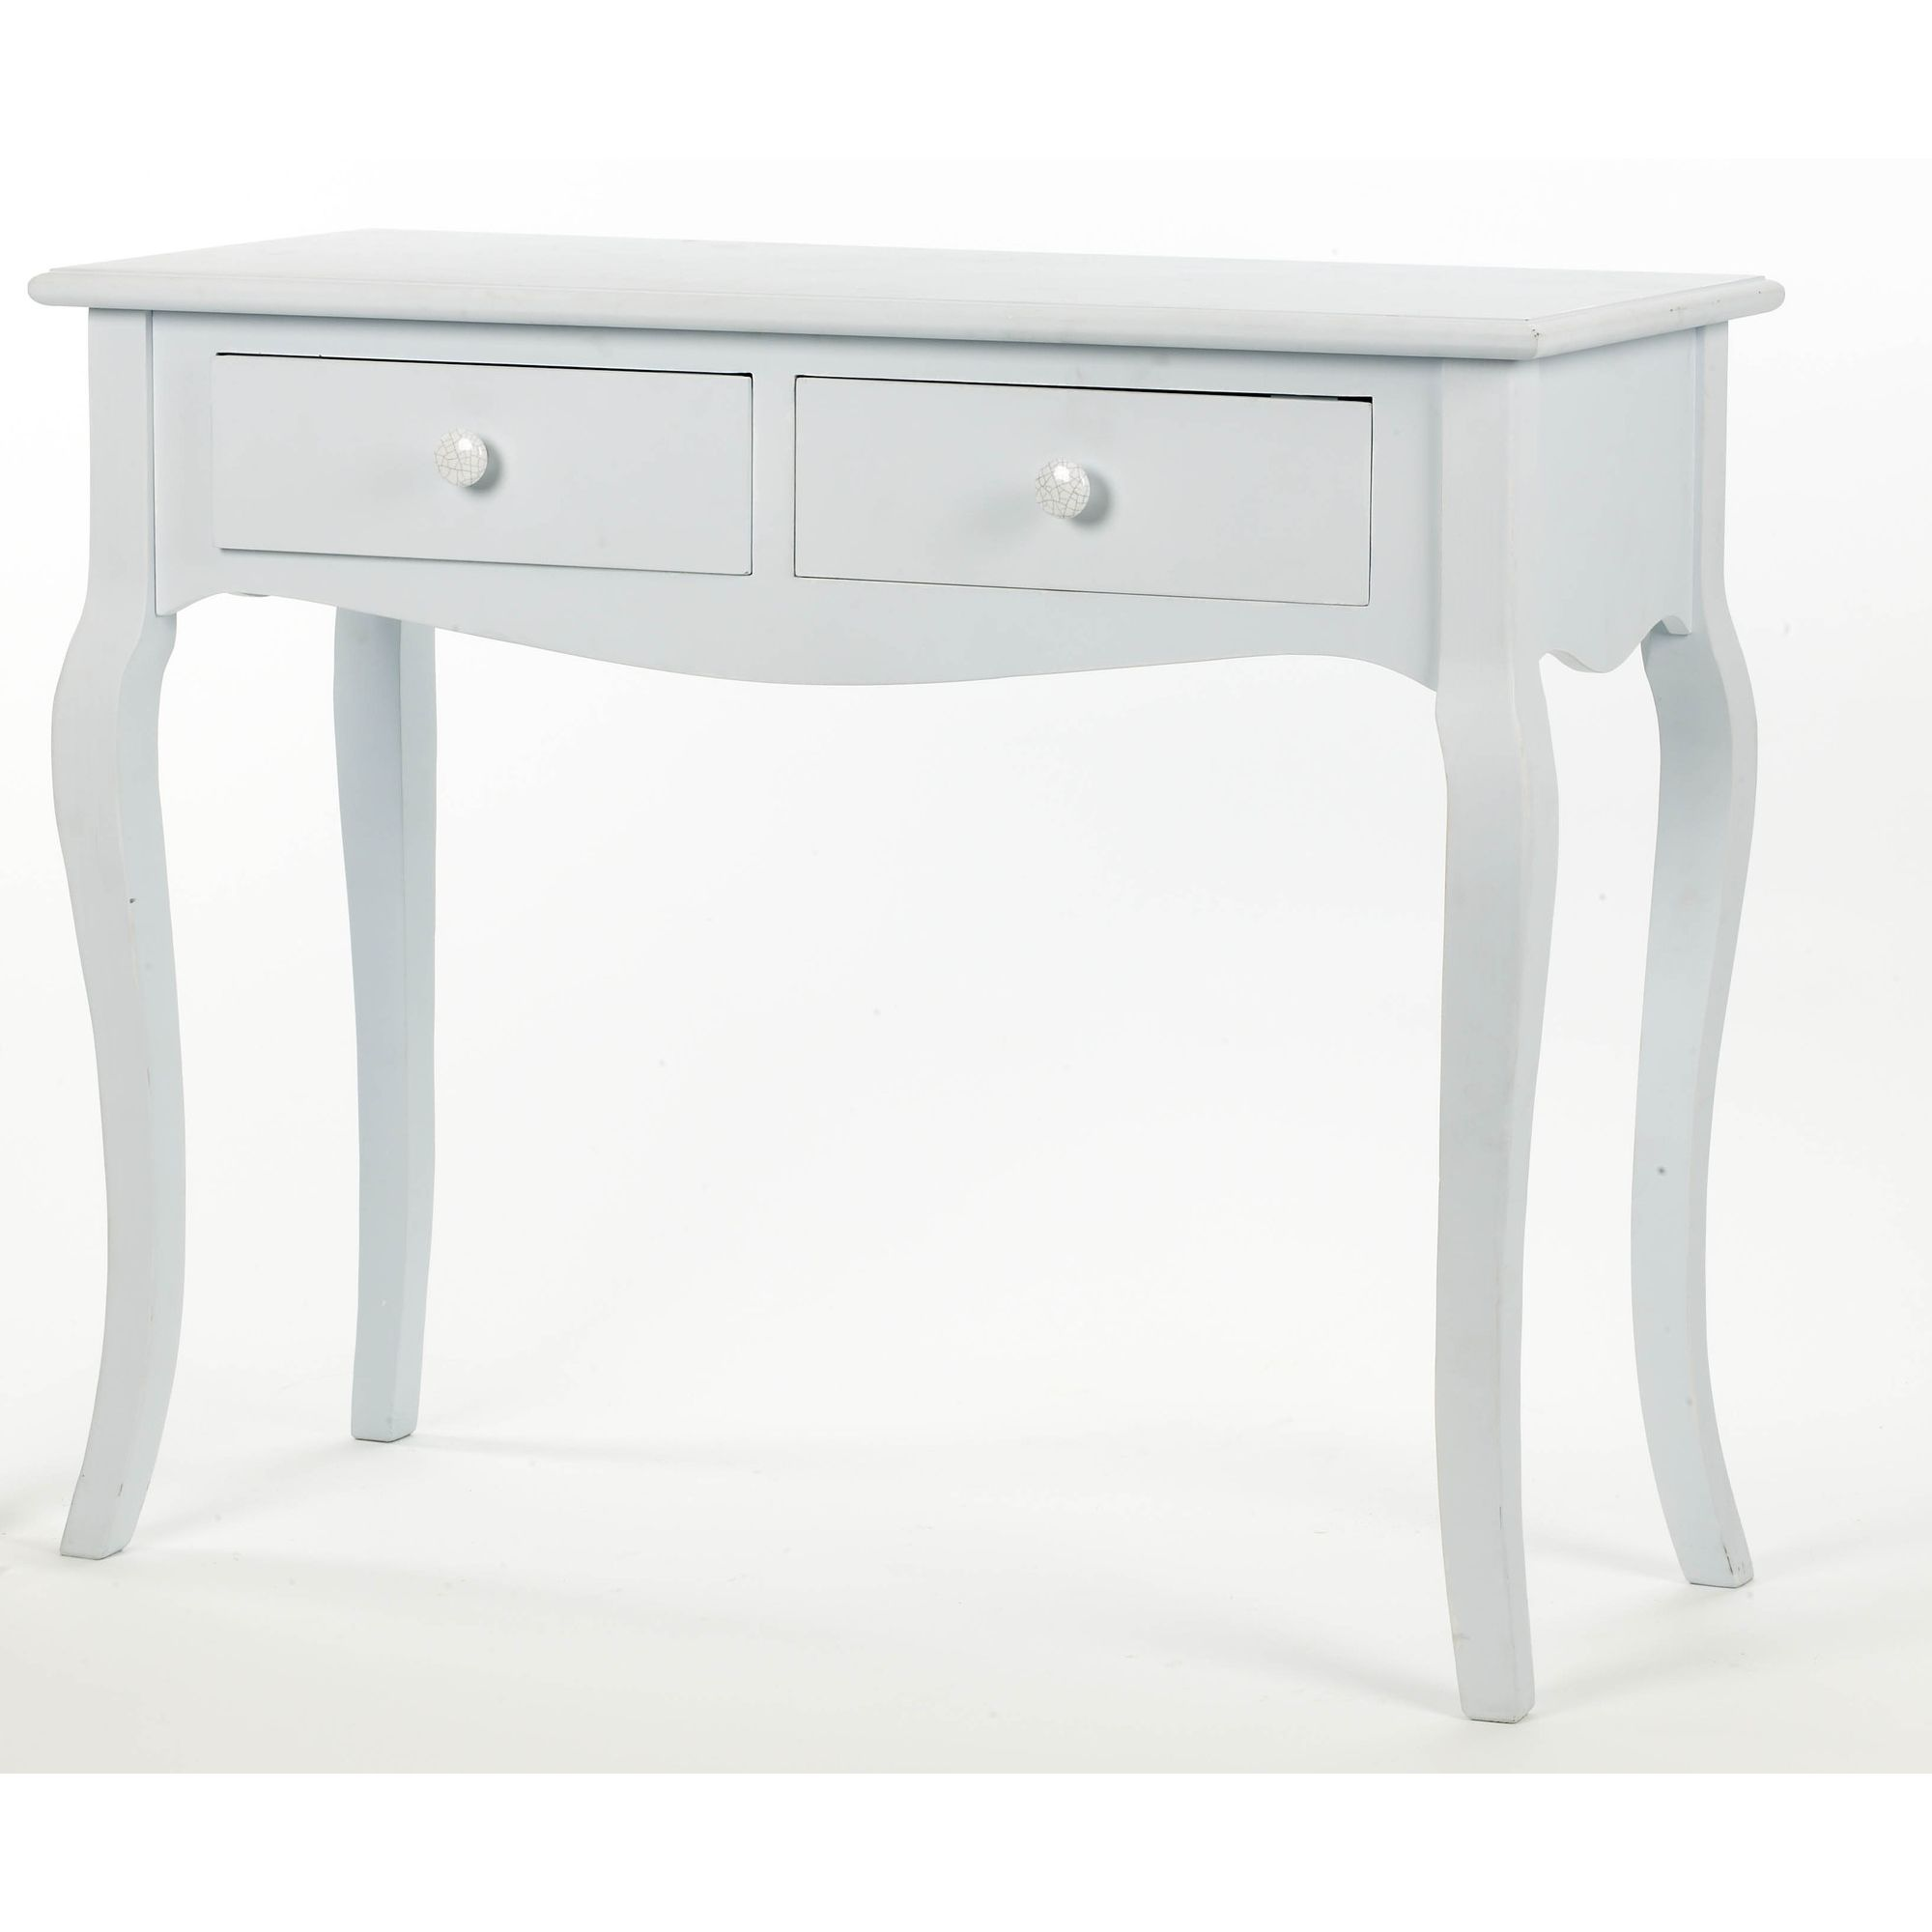 Salco 2 Drawer Console Table - Blue